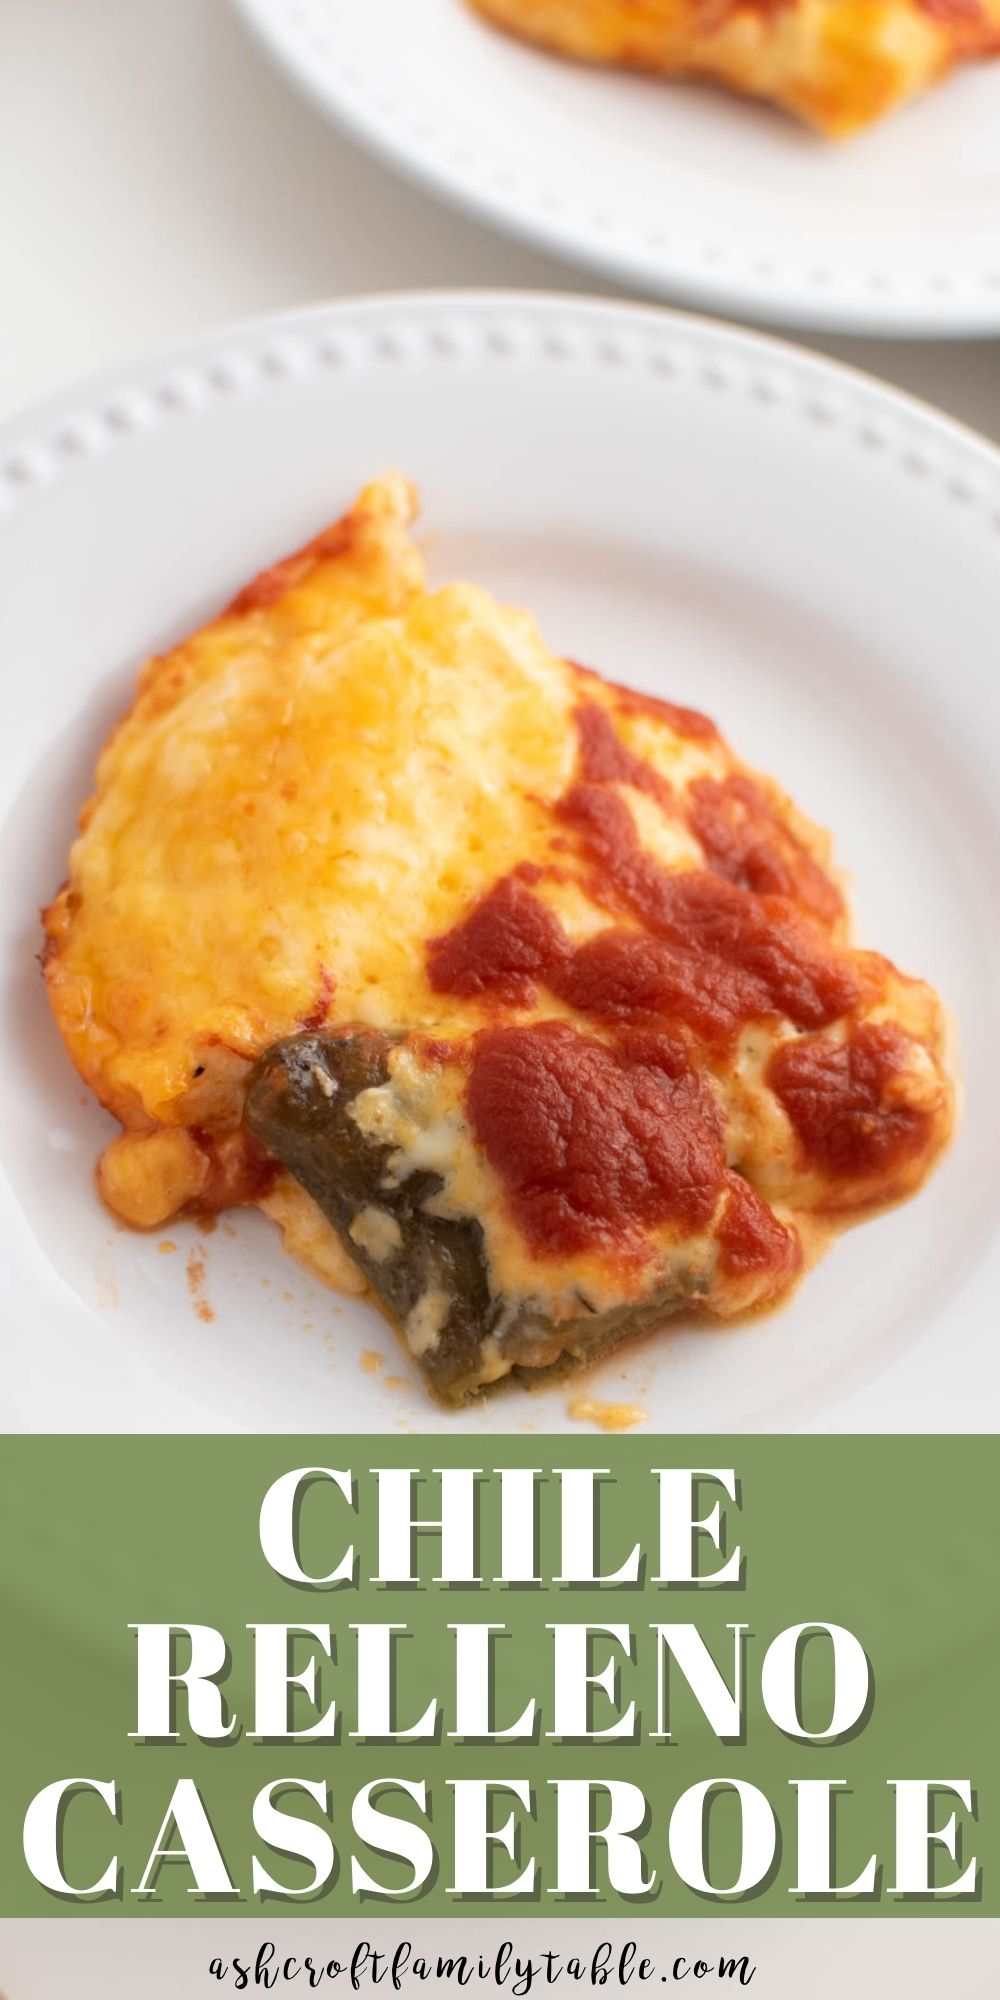 Pinterest graphic with text and plate of chile relleno casserole.